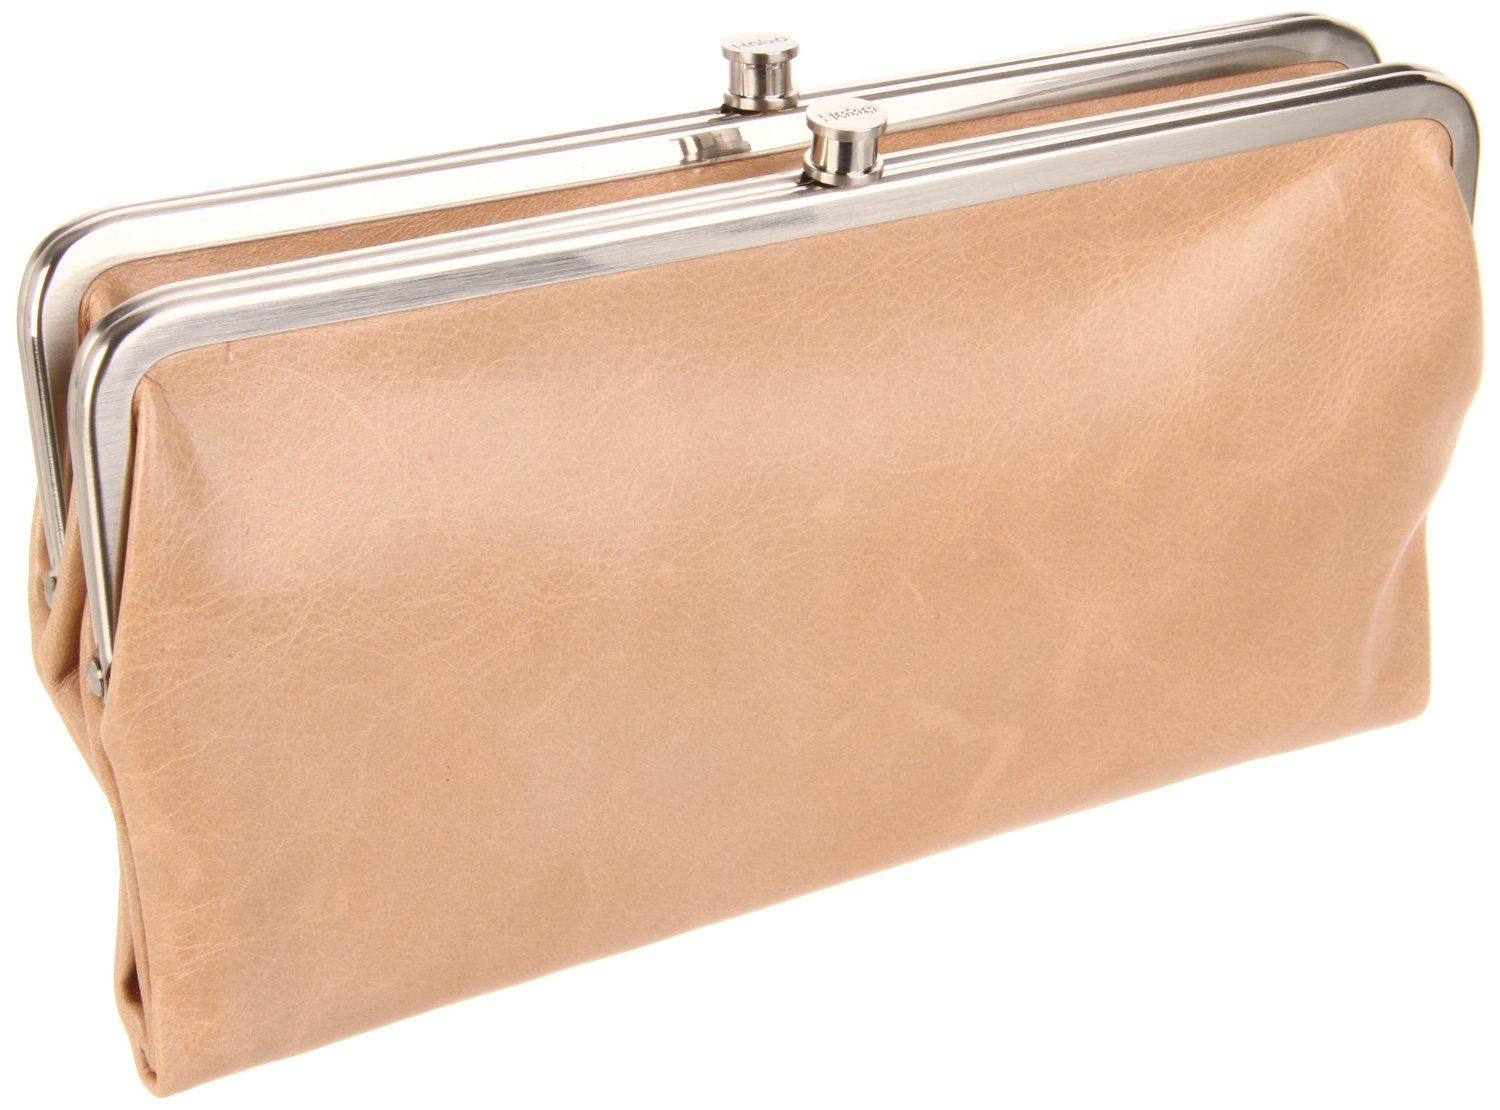 Amazing HOBO Laurent Italian Vintage Wallet . Only for Pinterest Users - Only 2 Available.   http://sweetdealtoday.com